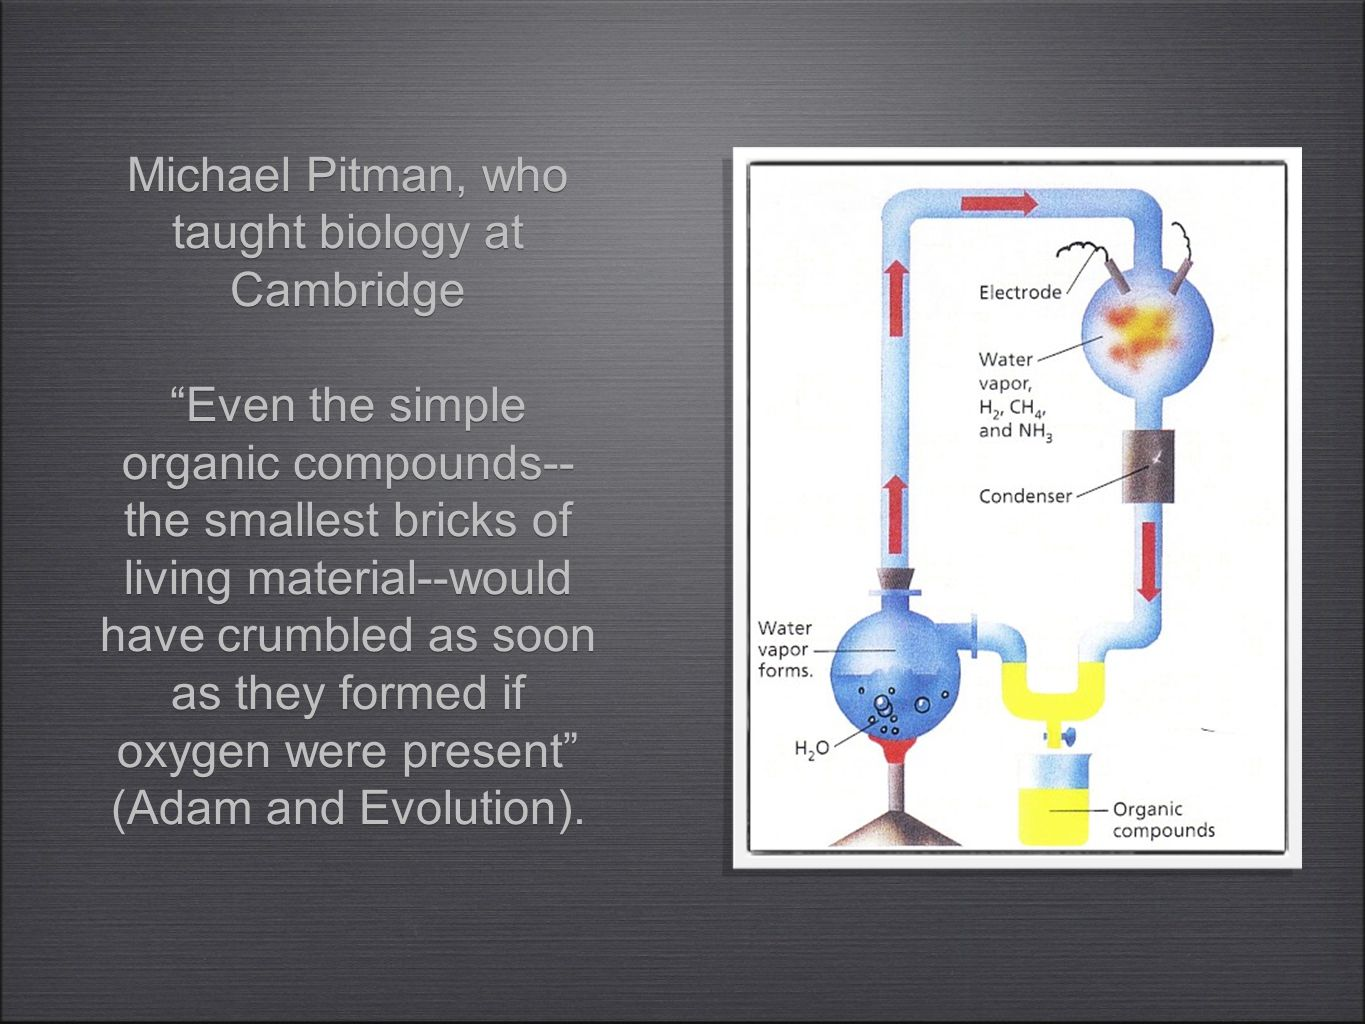 Michael Pitman, who taught biology at Cambridge Even the simple organic compounds-- the smallest bricks of living material--would have crumbled as soon as they formed if oxygen were present (Adam and Evolution).